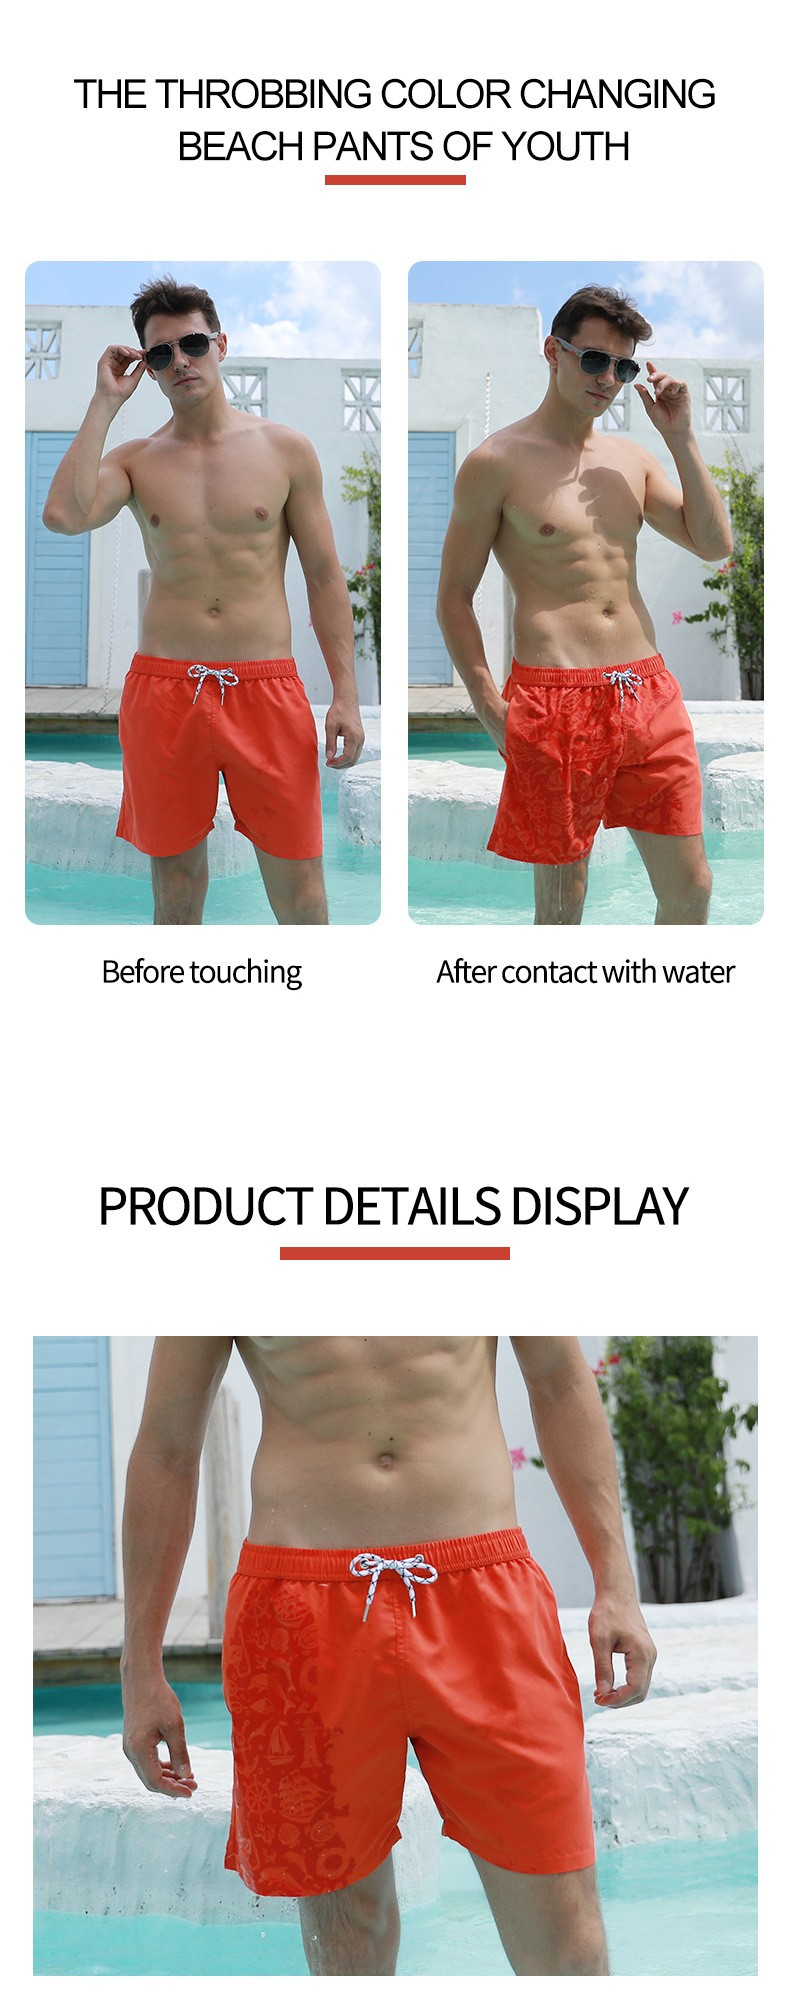 Large Size Quarter-free Short Pants Beach Pants In The Water Flowers Color Changing Magic Print Beach Pants Men's Swimming Trunks - Anchor Water Green L